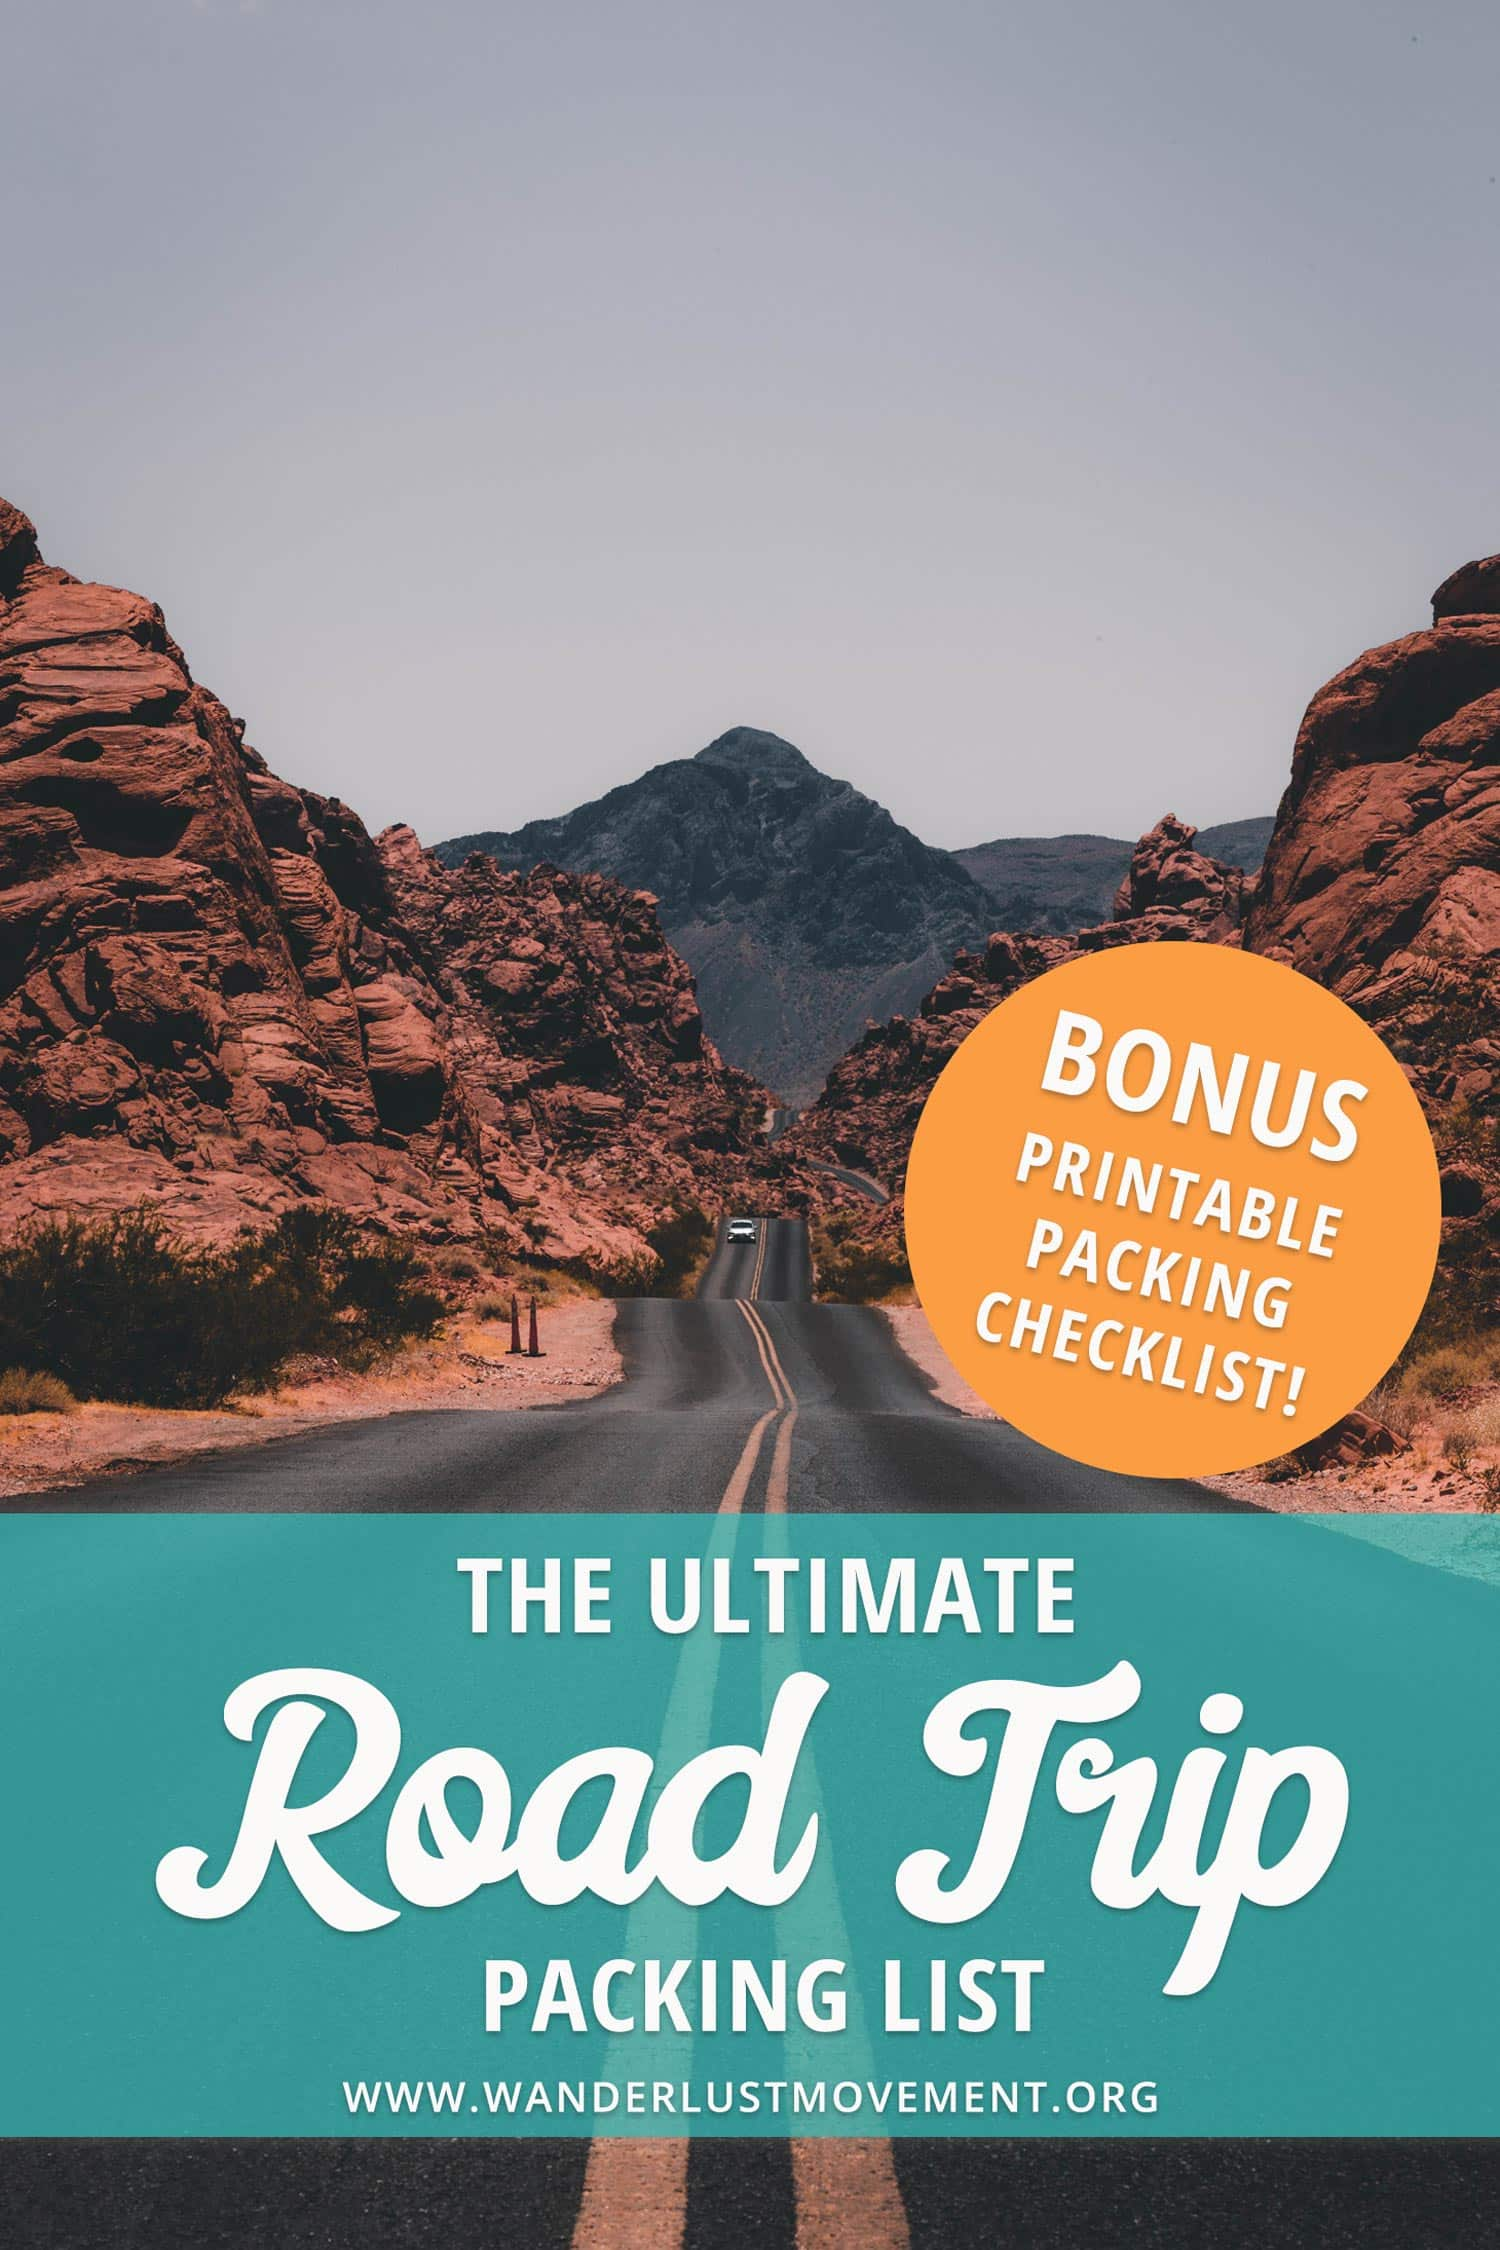 Planning an epic road trip close to home or abroad? Don\'t leave your house without these road trip essentials! Download the free road trip checklist to make sure you don\'t forget your toothbrush or anything else that\'s important...again. | Road Trip Packing | Ultimate Road Trip | Tips for Road Trip | Road Trip Travel | #roadtrip #packinglist #traveltips #travel